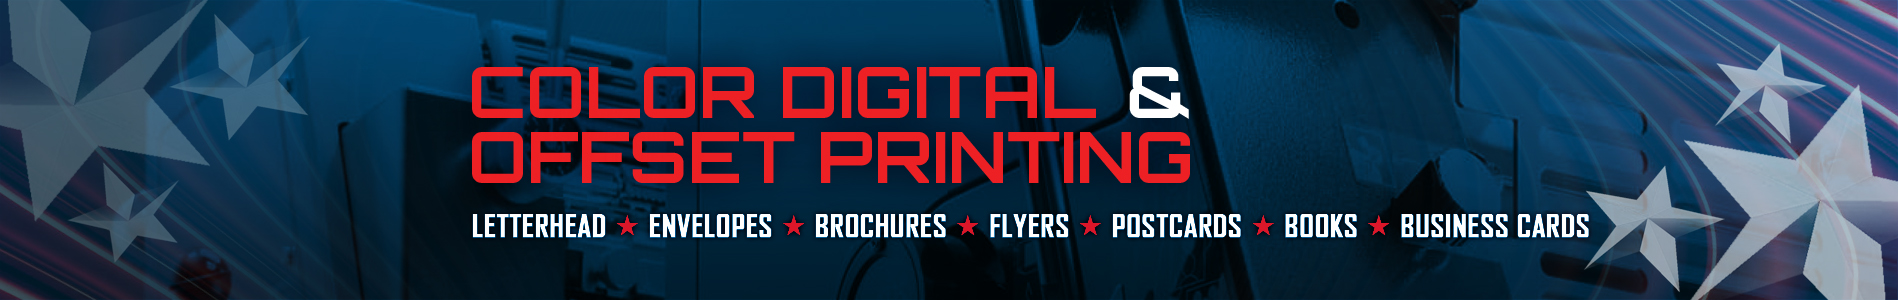 Color Digital and Offset Printing - Letterhead | Envelopes | Brochures | Flyers | Post Cards | Books | Business Cards